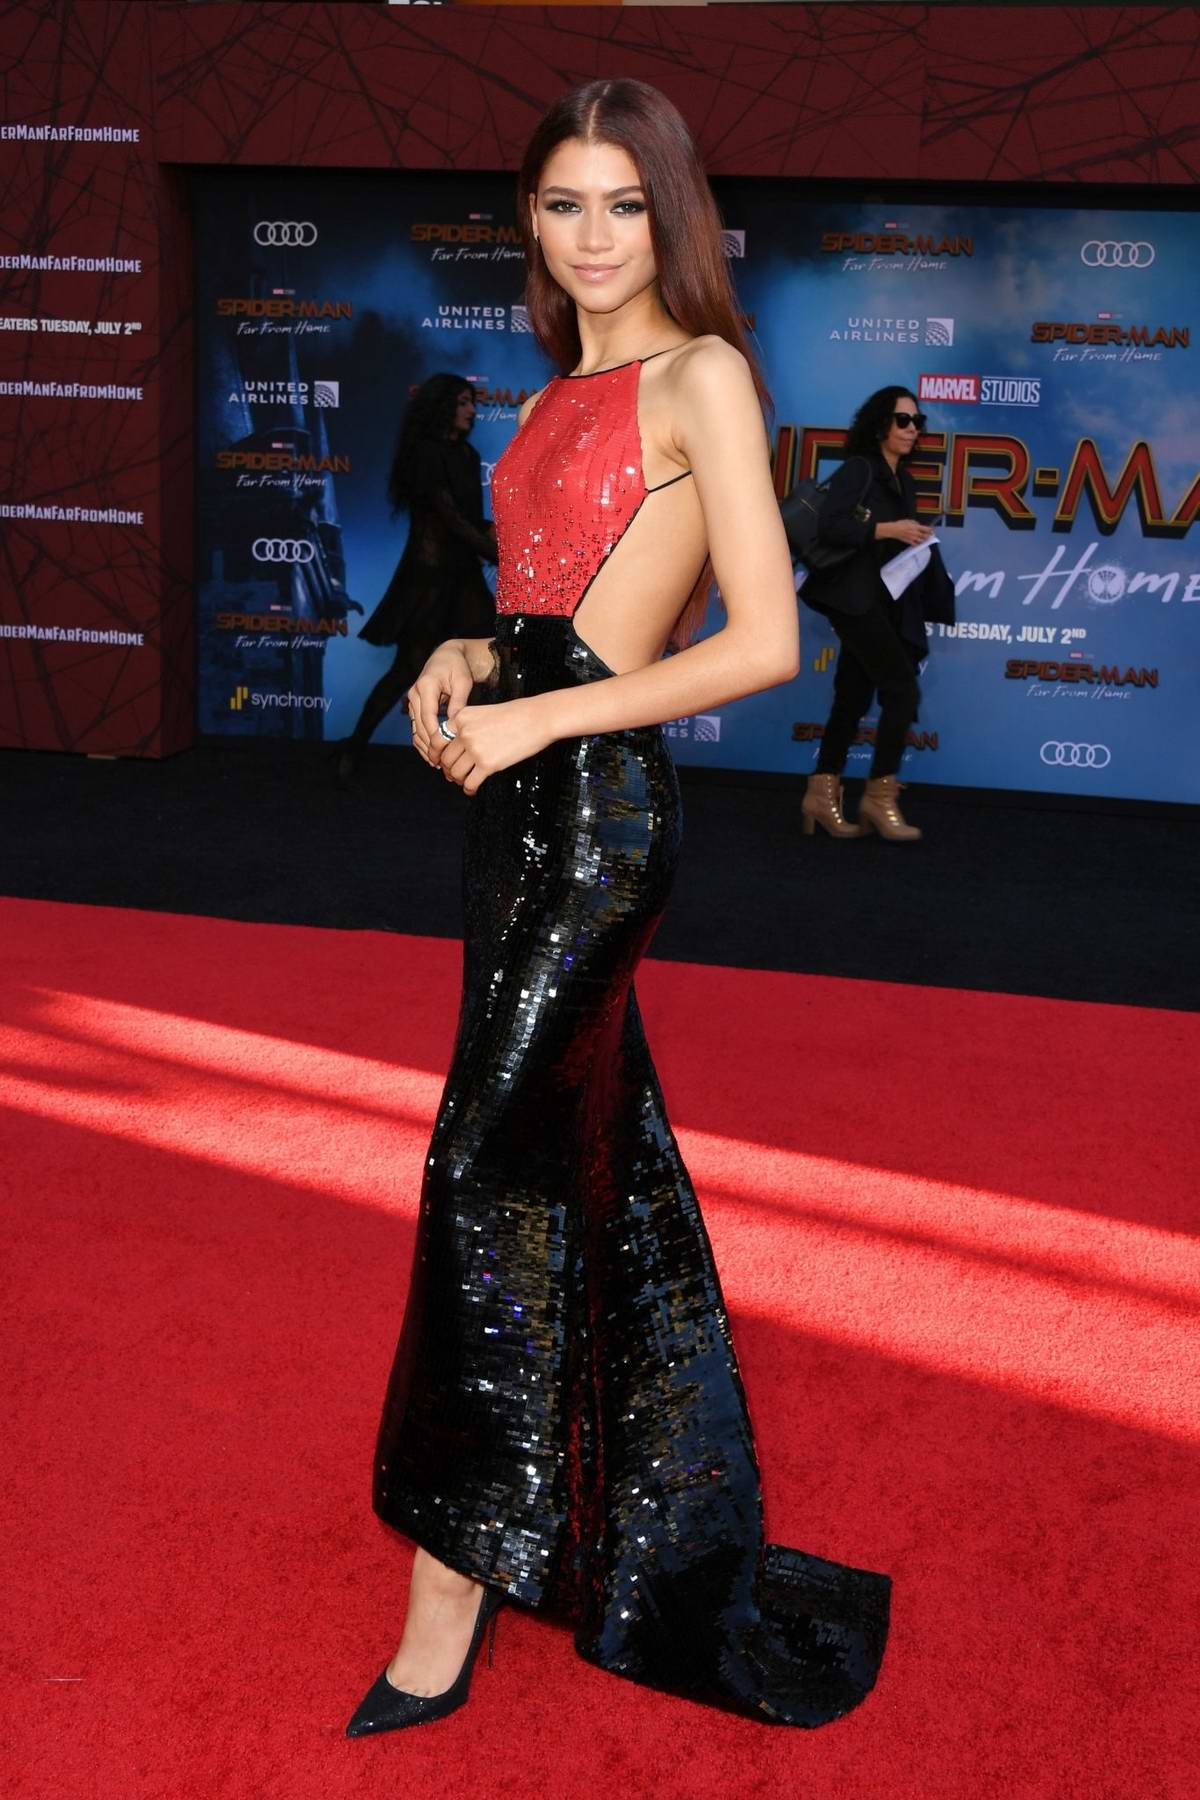 Zendaya attends the premiere of 'Spider-Man: Far From Home' at TCL Chinese Theatre in Hollywood, California